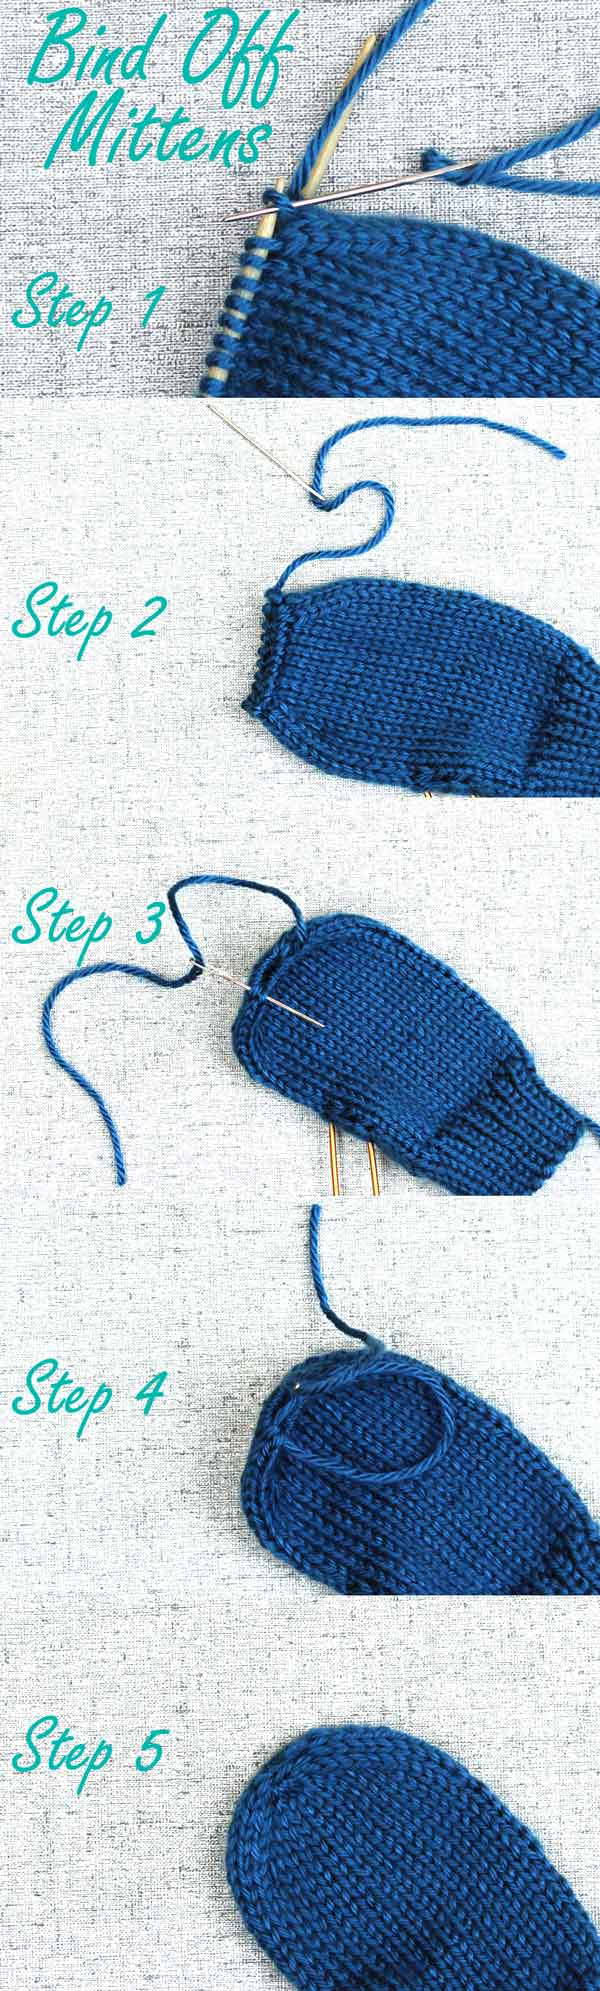 Knitting Binding Off Final Stitch : Binding Off Mittens, Finishing tips for handknit mittens - PurlsAndPixels